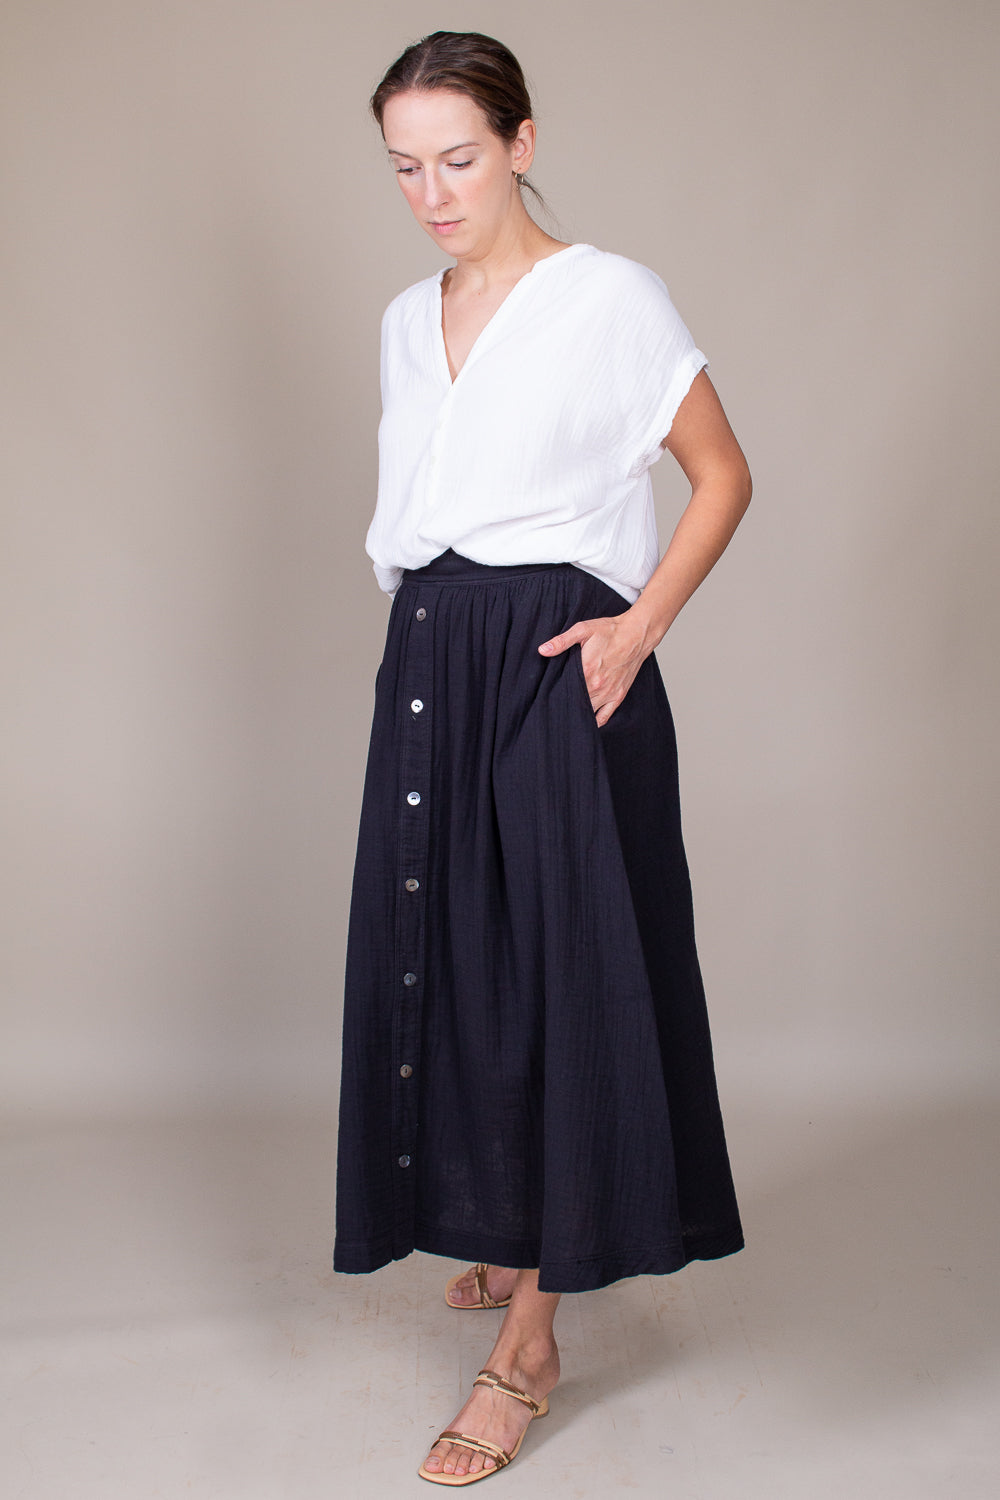 Teagan Skirt in Black